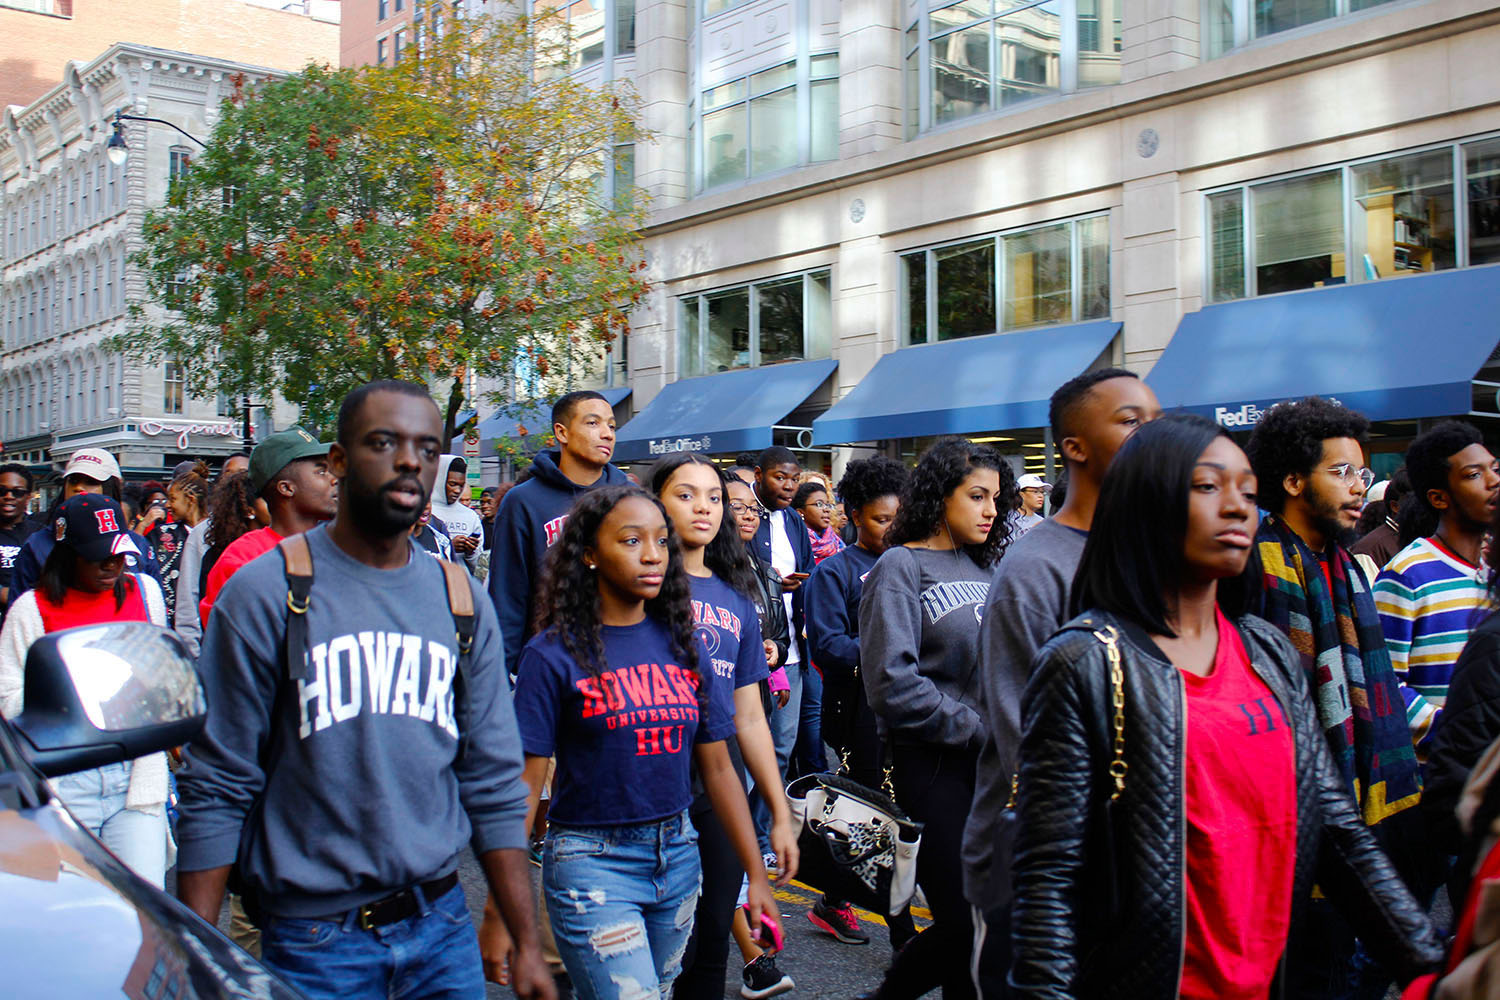 CW_5-Howard-protest_use.jpg?time=1592763689